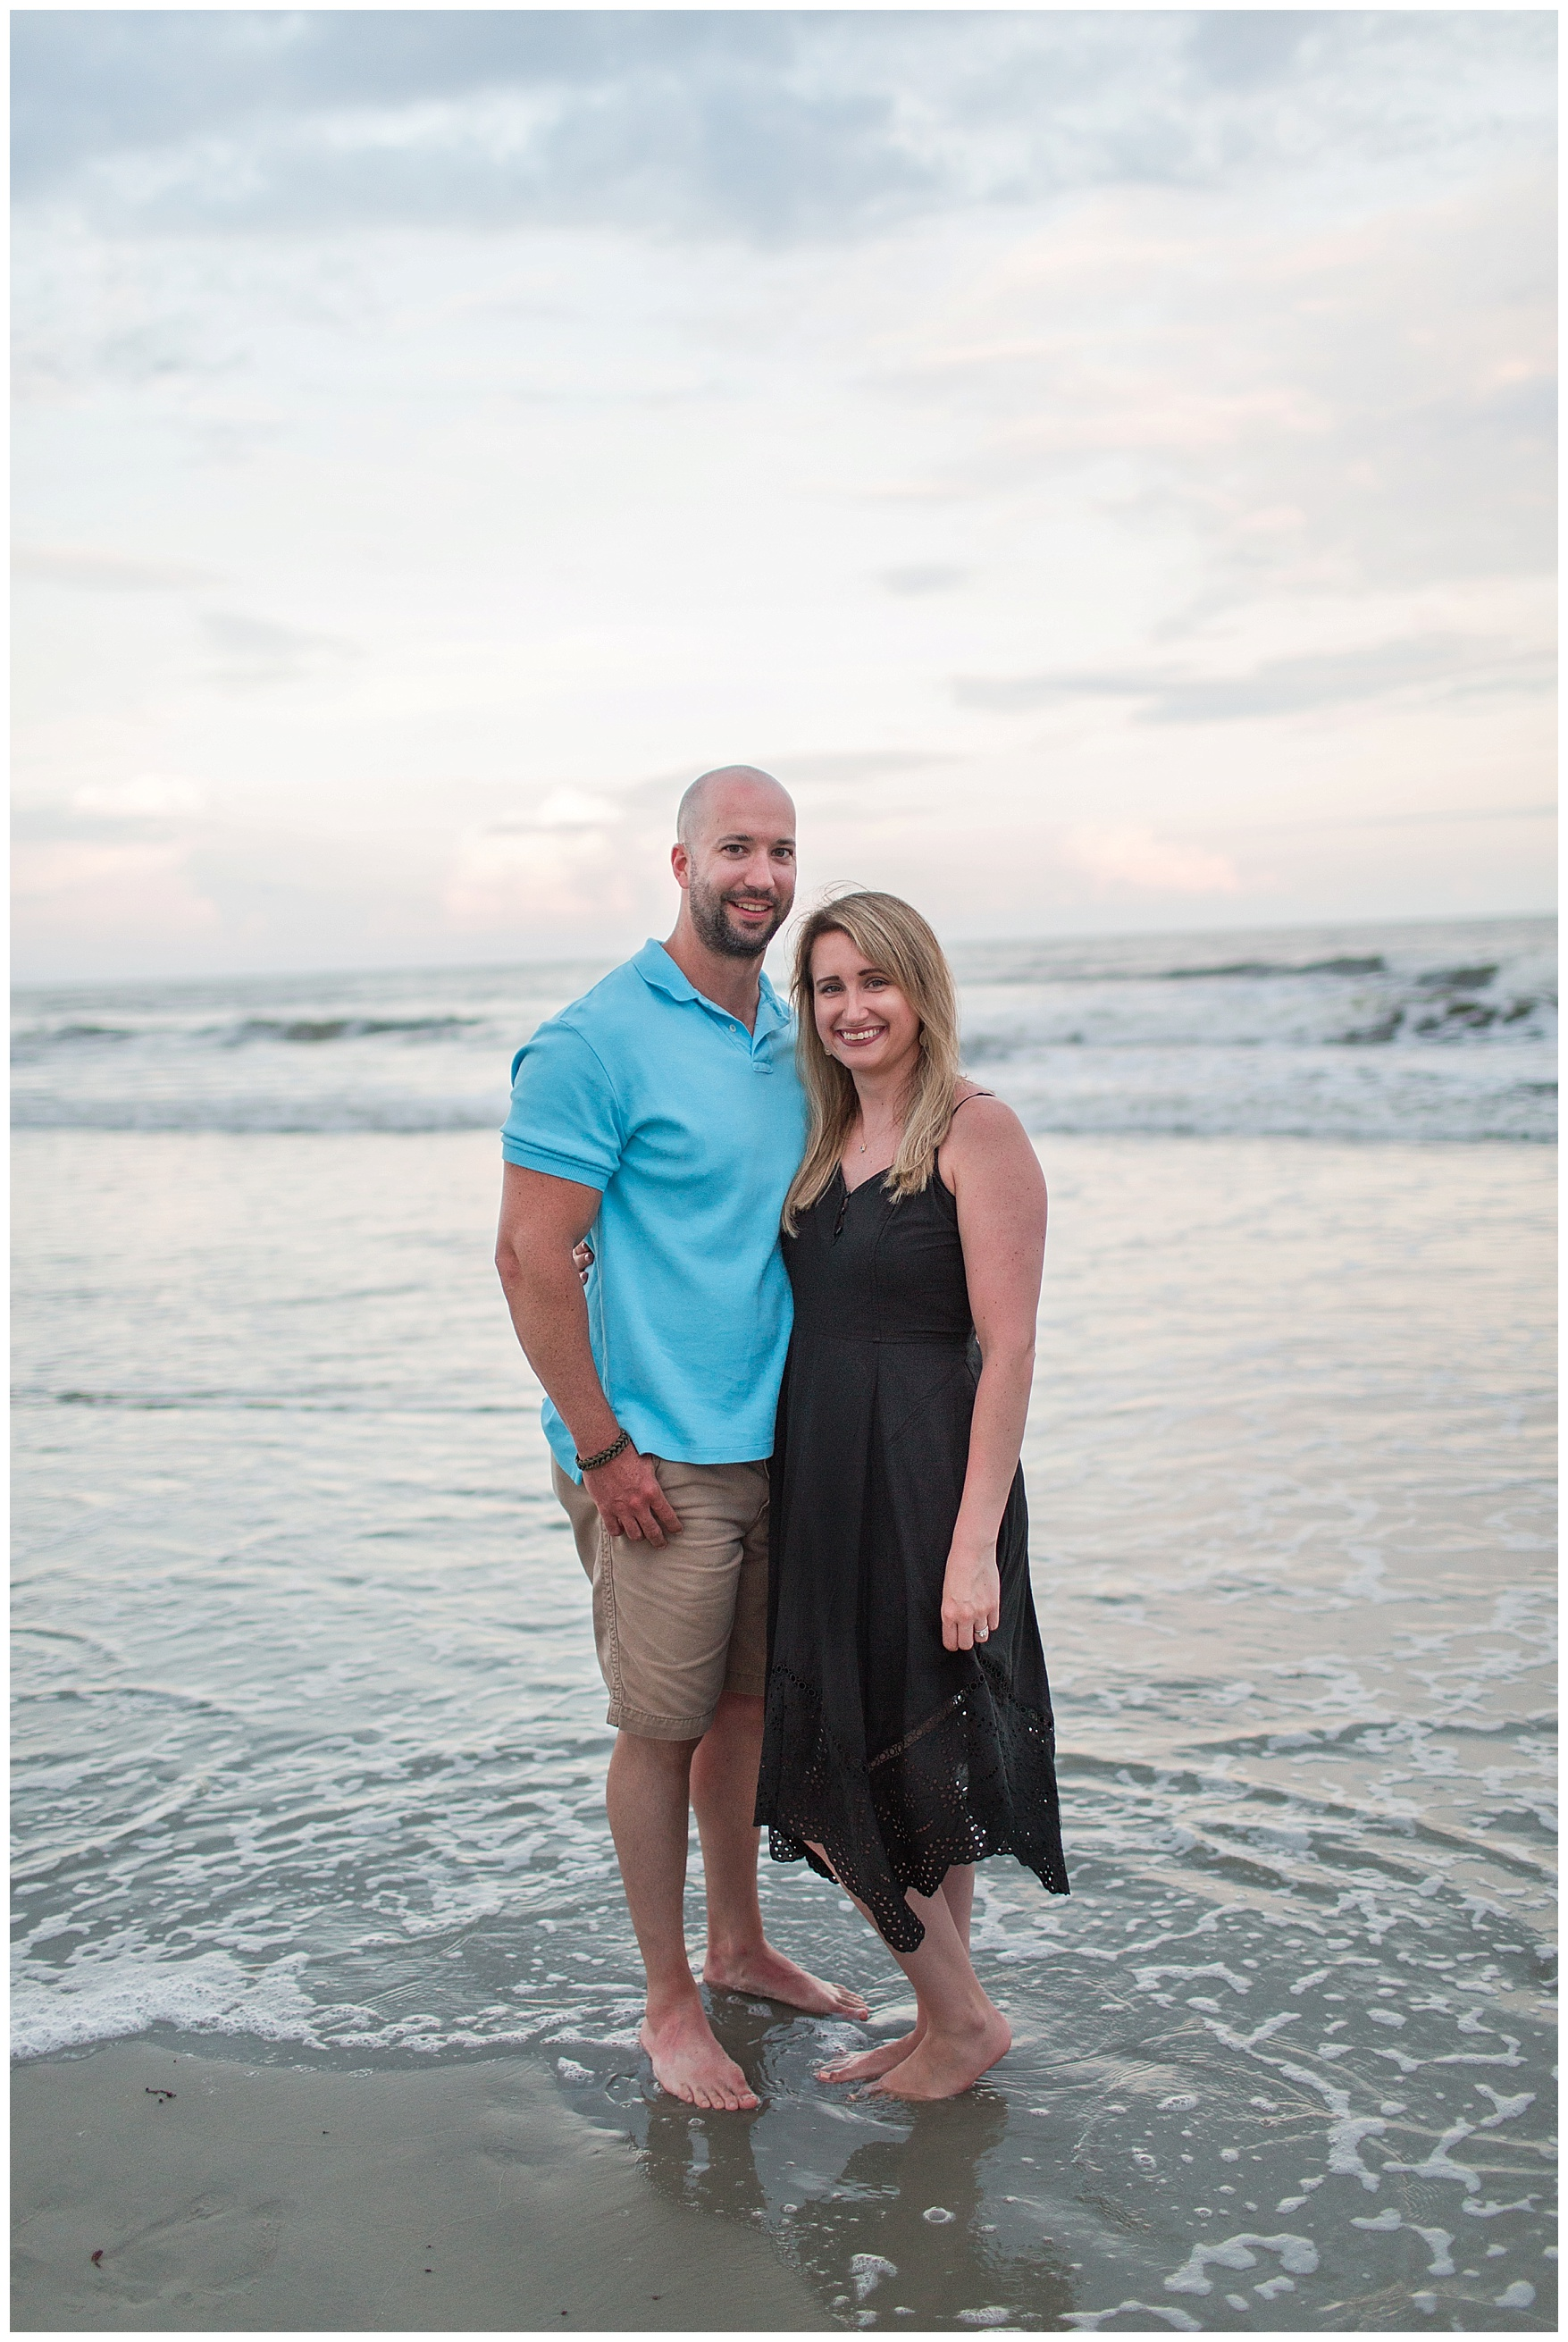 Family Portraits at Sunset Beach, North Carolina || Lynchburg, VA Wedding and Family Photographer